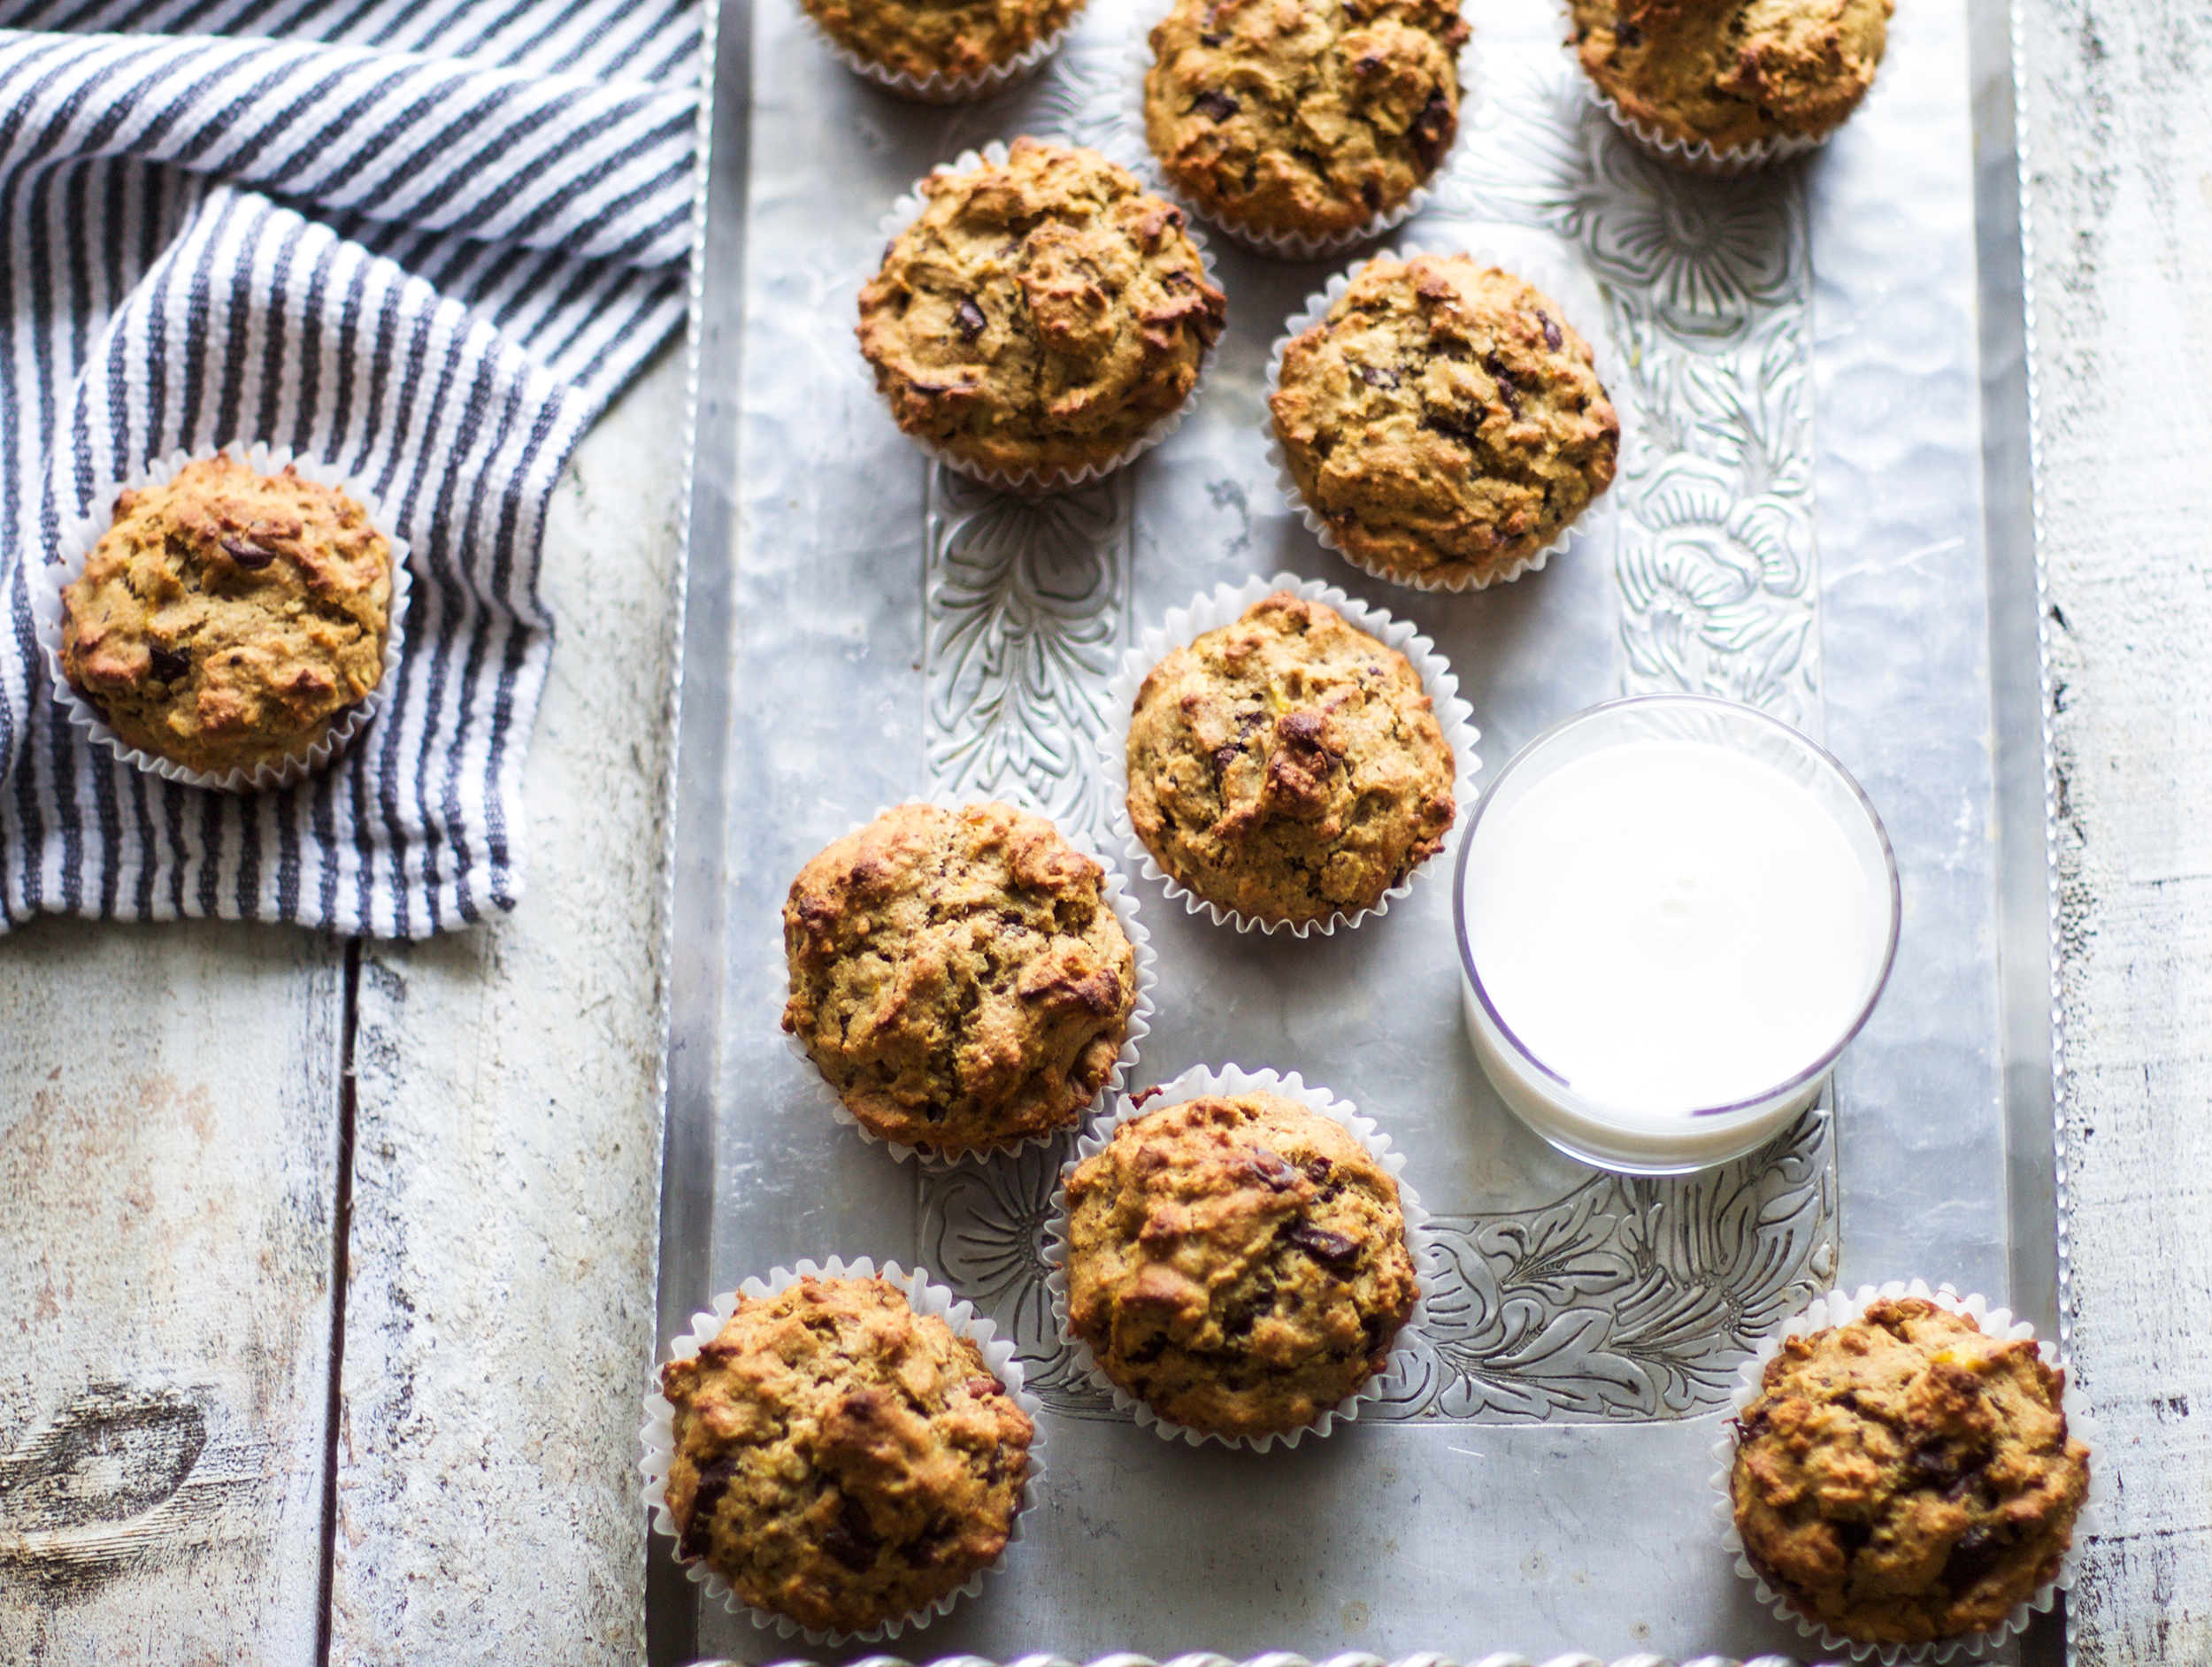 Healthy Chocolate Chip Pecan Muffins: My Diary of UsHealthy Chocolate Chip Pecan Muffins: My Diary of Us